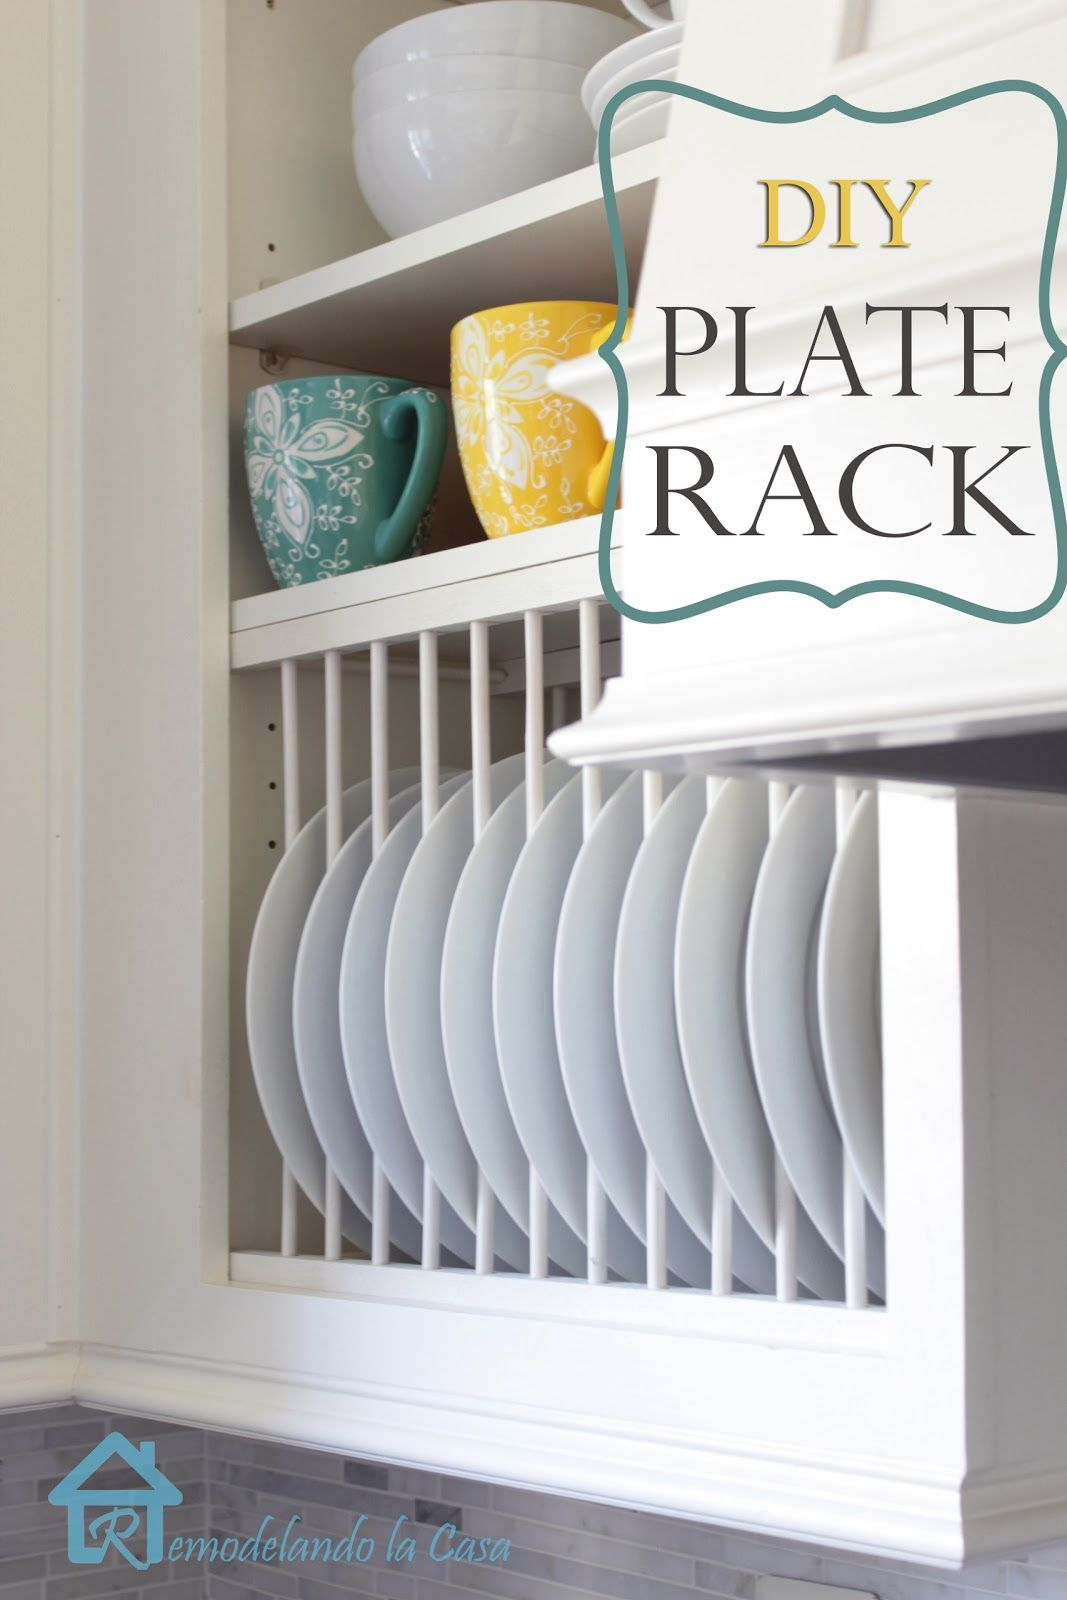 diy inside cabinet plate rack cottage kitchen cabinets rh pinterest com Under Cabinet Plate Rack Cabinet Plate Rack Kit